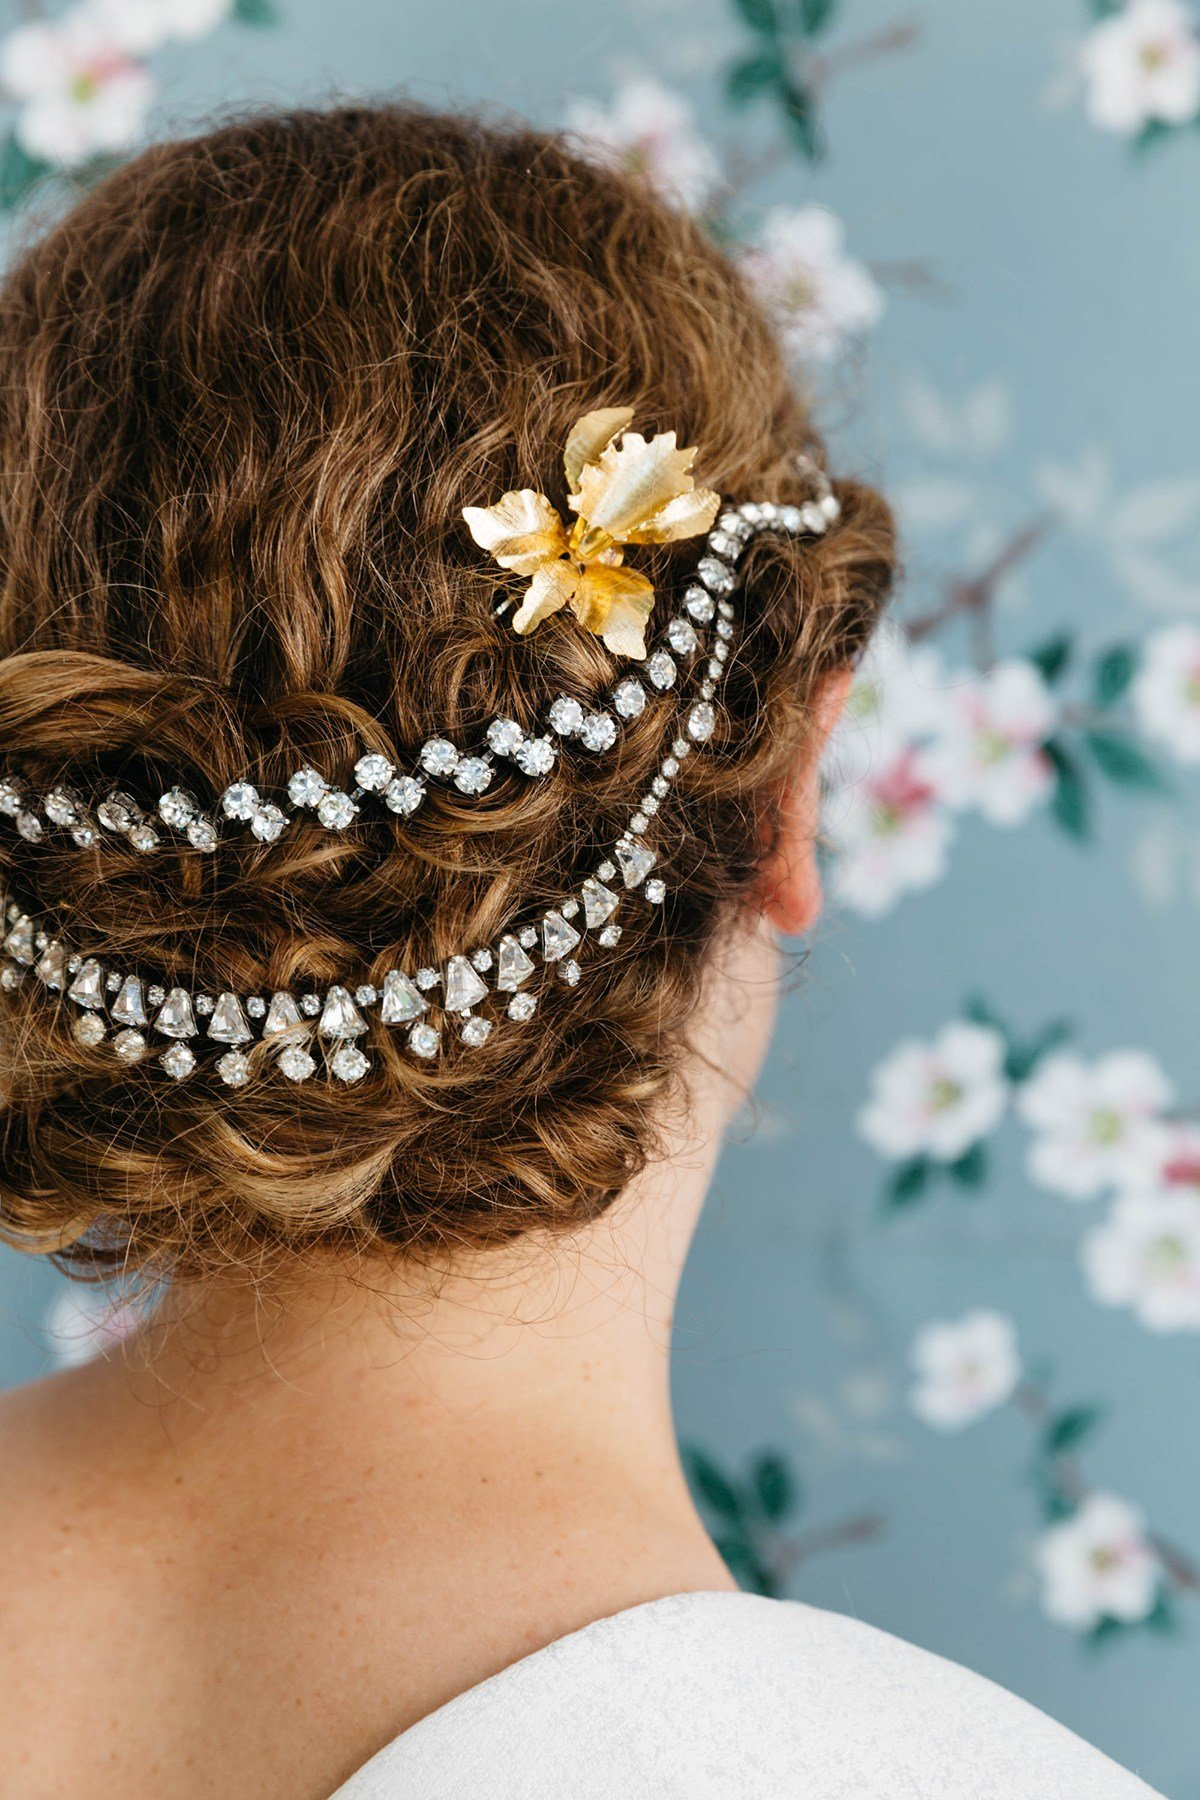 The Best Diy Hair Accessories With Vintage Jewelry – Honestly Wtf Pictures